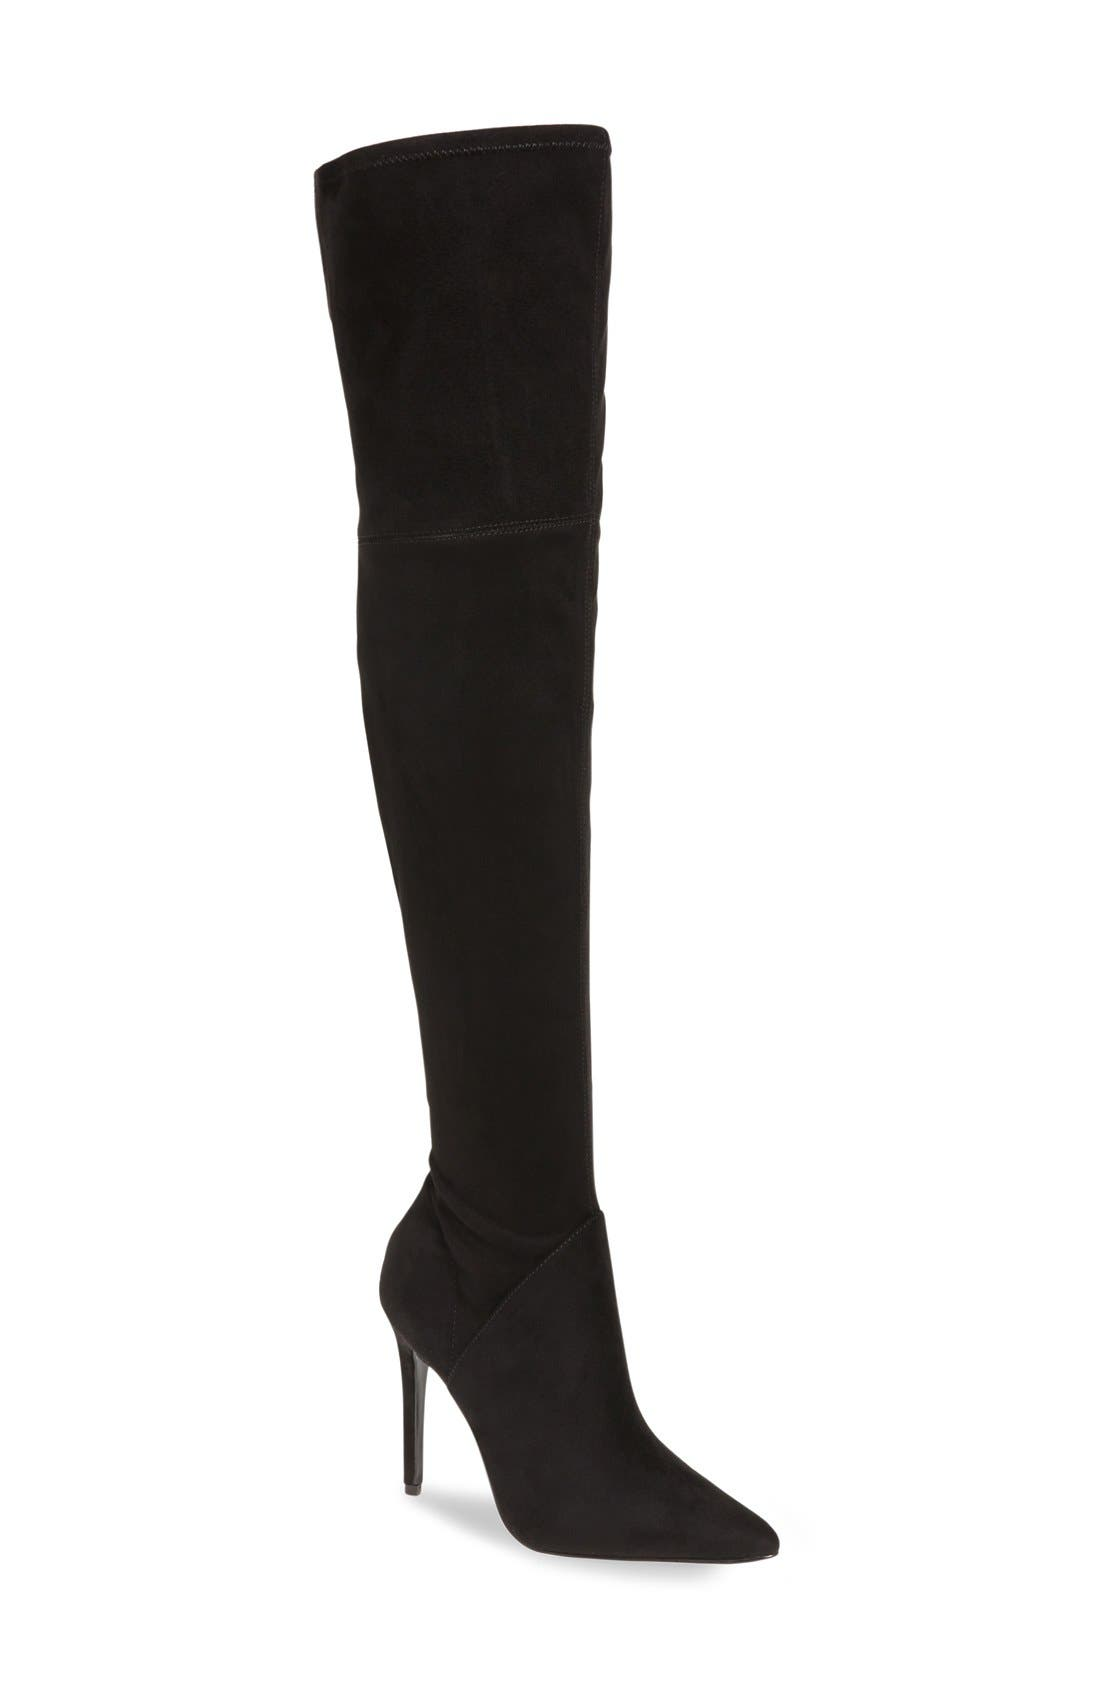 Alternate Image 1 Selected - KENDALL + KYLIE Kayla Stretch Over the Knee Boot (Women)